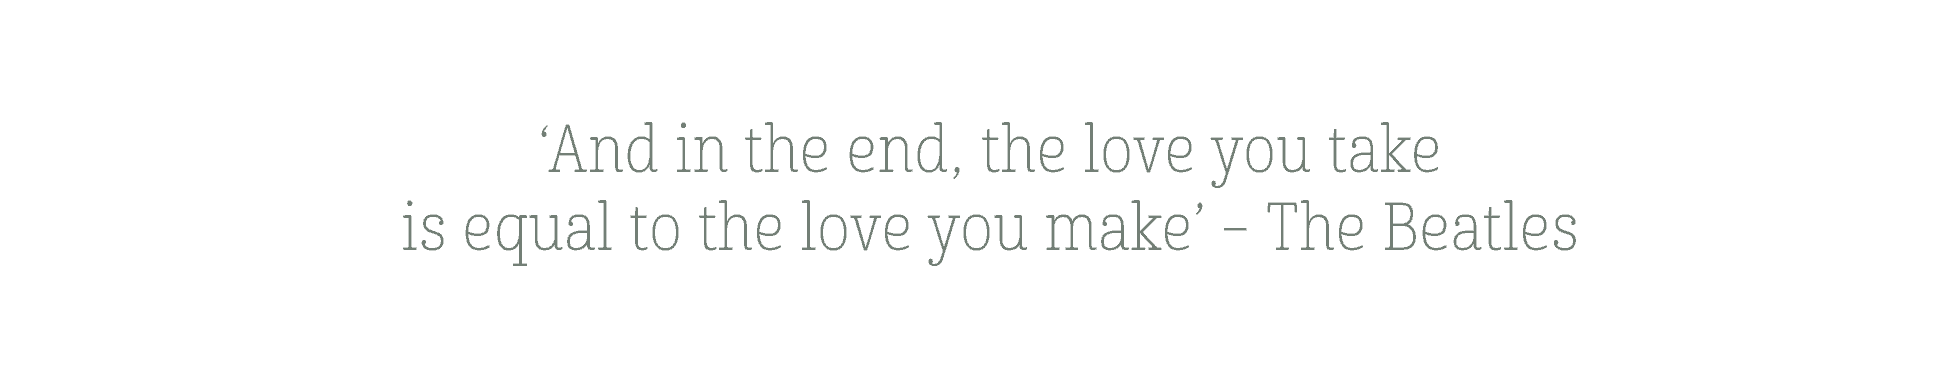 Love you take is equal to the love you make